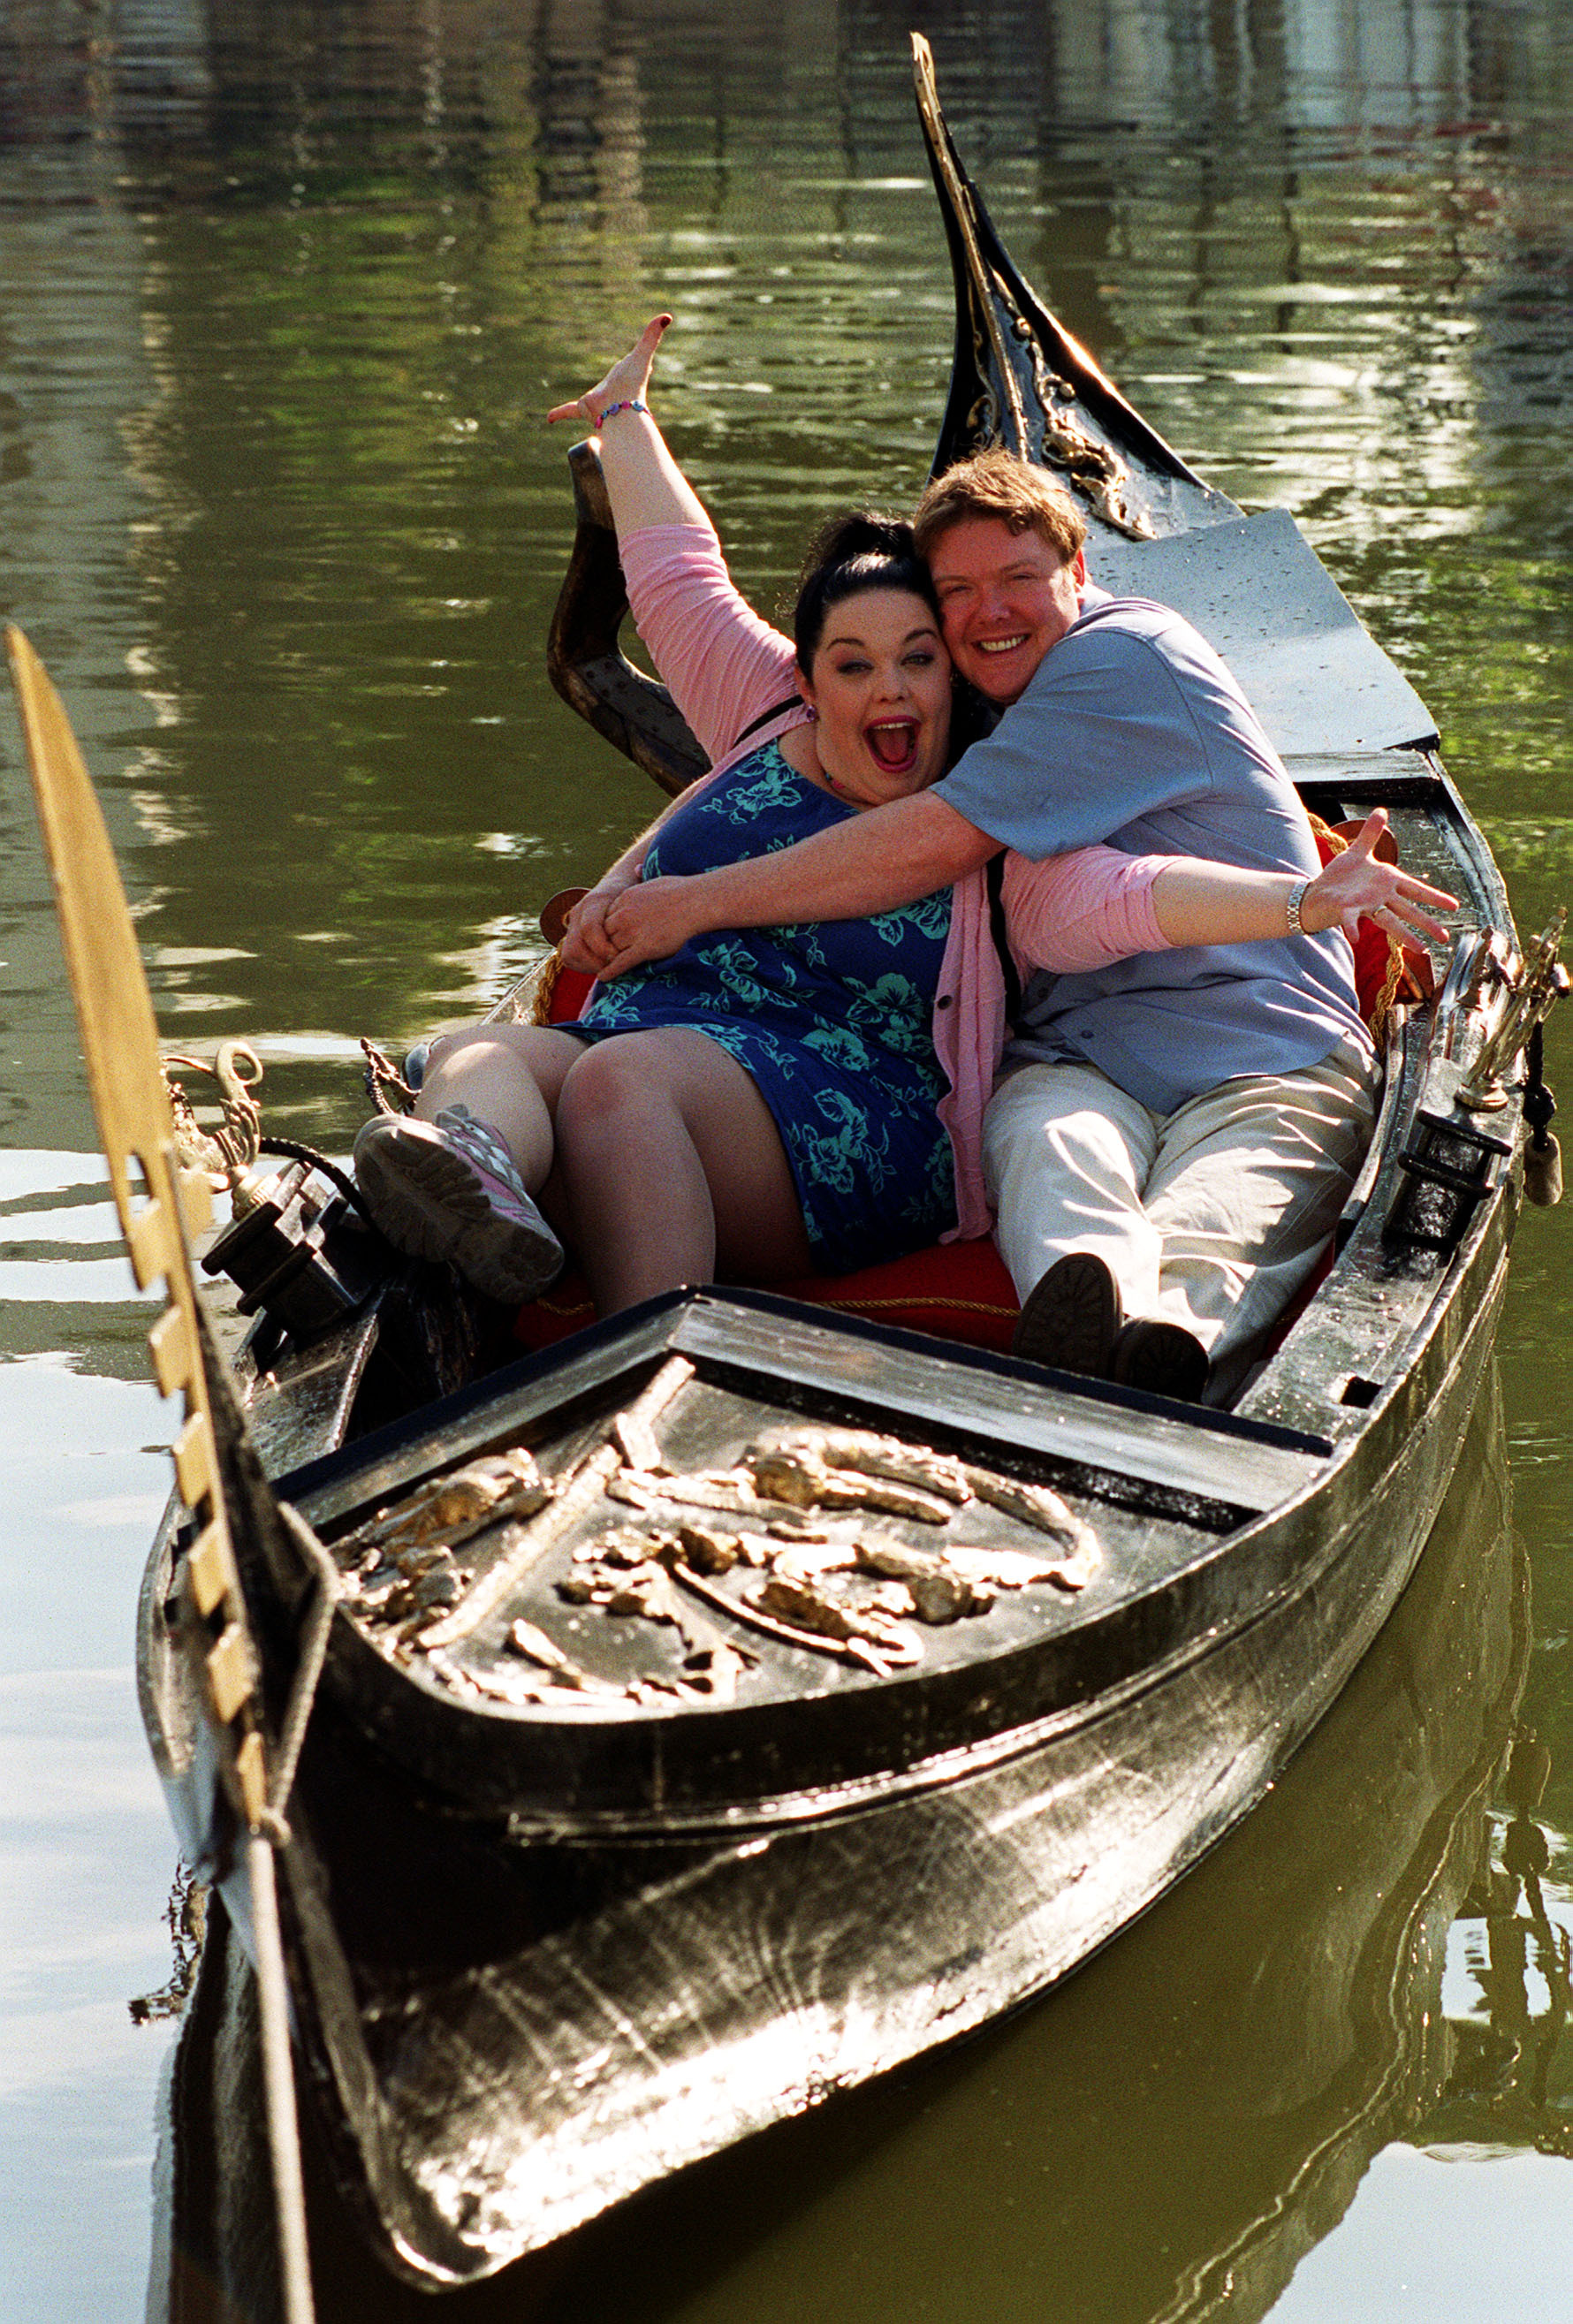 Mandy Dingle, Paddy Kirk in a gondola